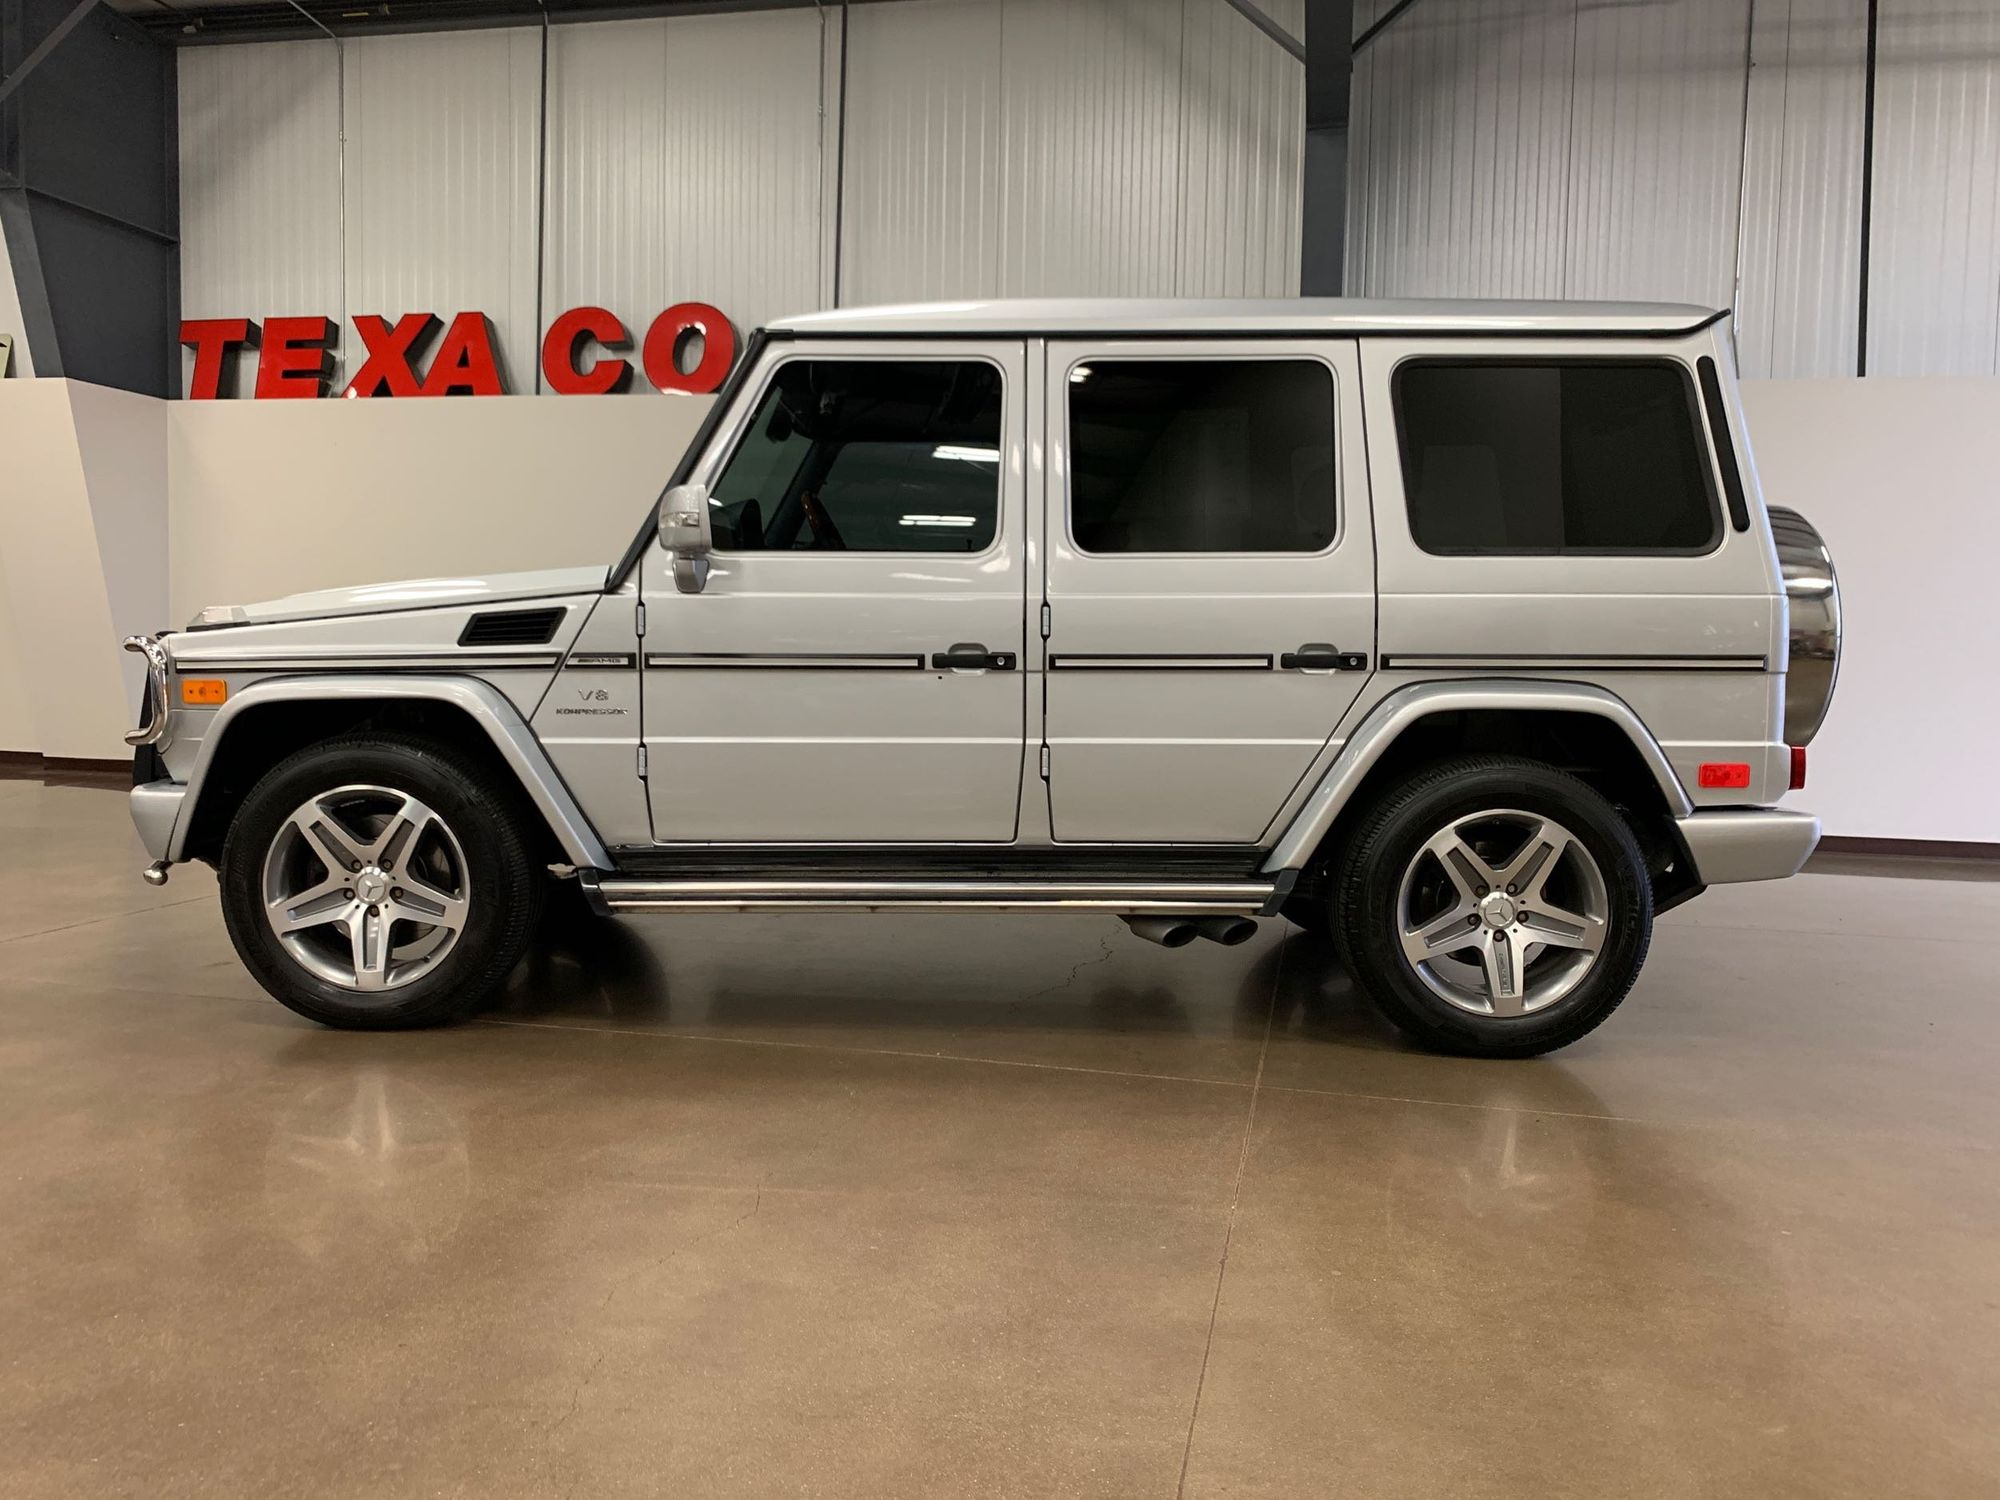 2011 Mercedes-Benz G-Class G 55 AMG   Red's Auto and Truck